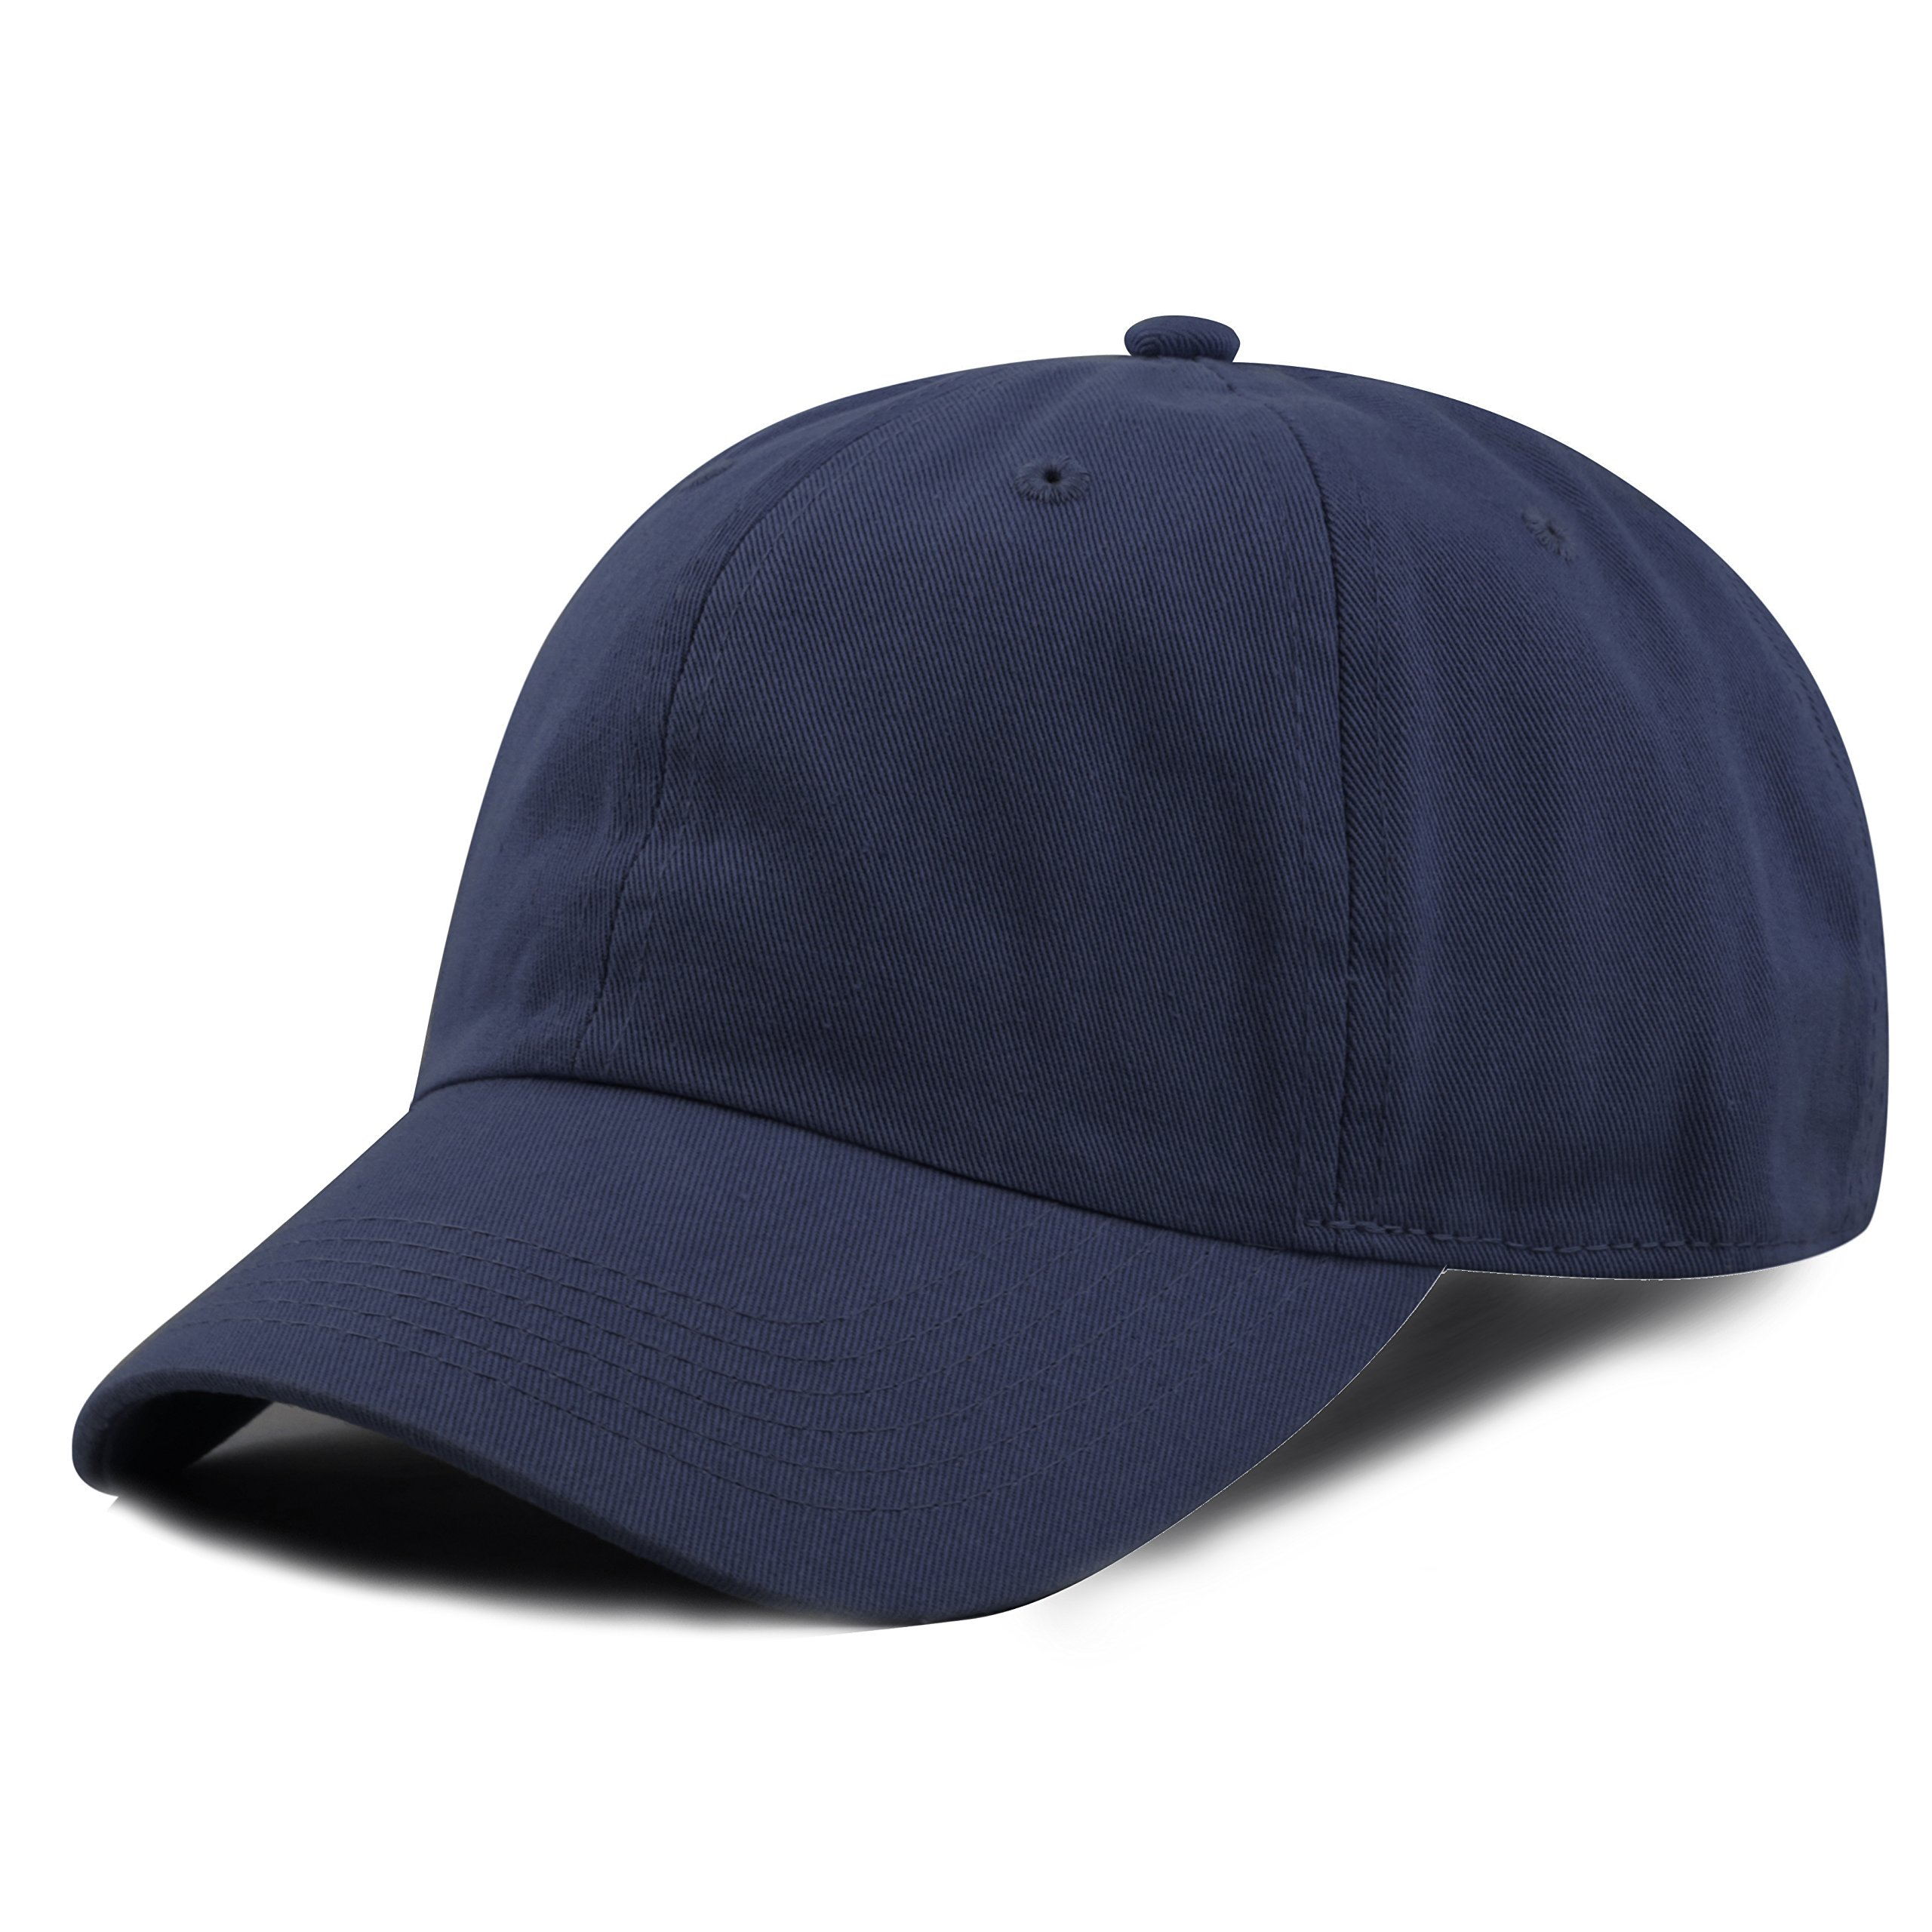 THE HAT DEPOT Kids Washed Low Profile Cotton and Denim Plain Baseball Cap  Hat product image 22f7213768bc